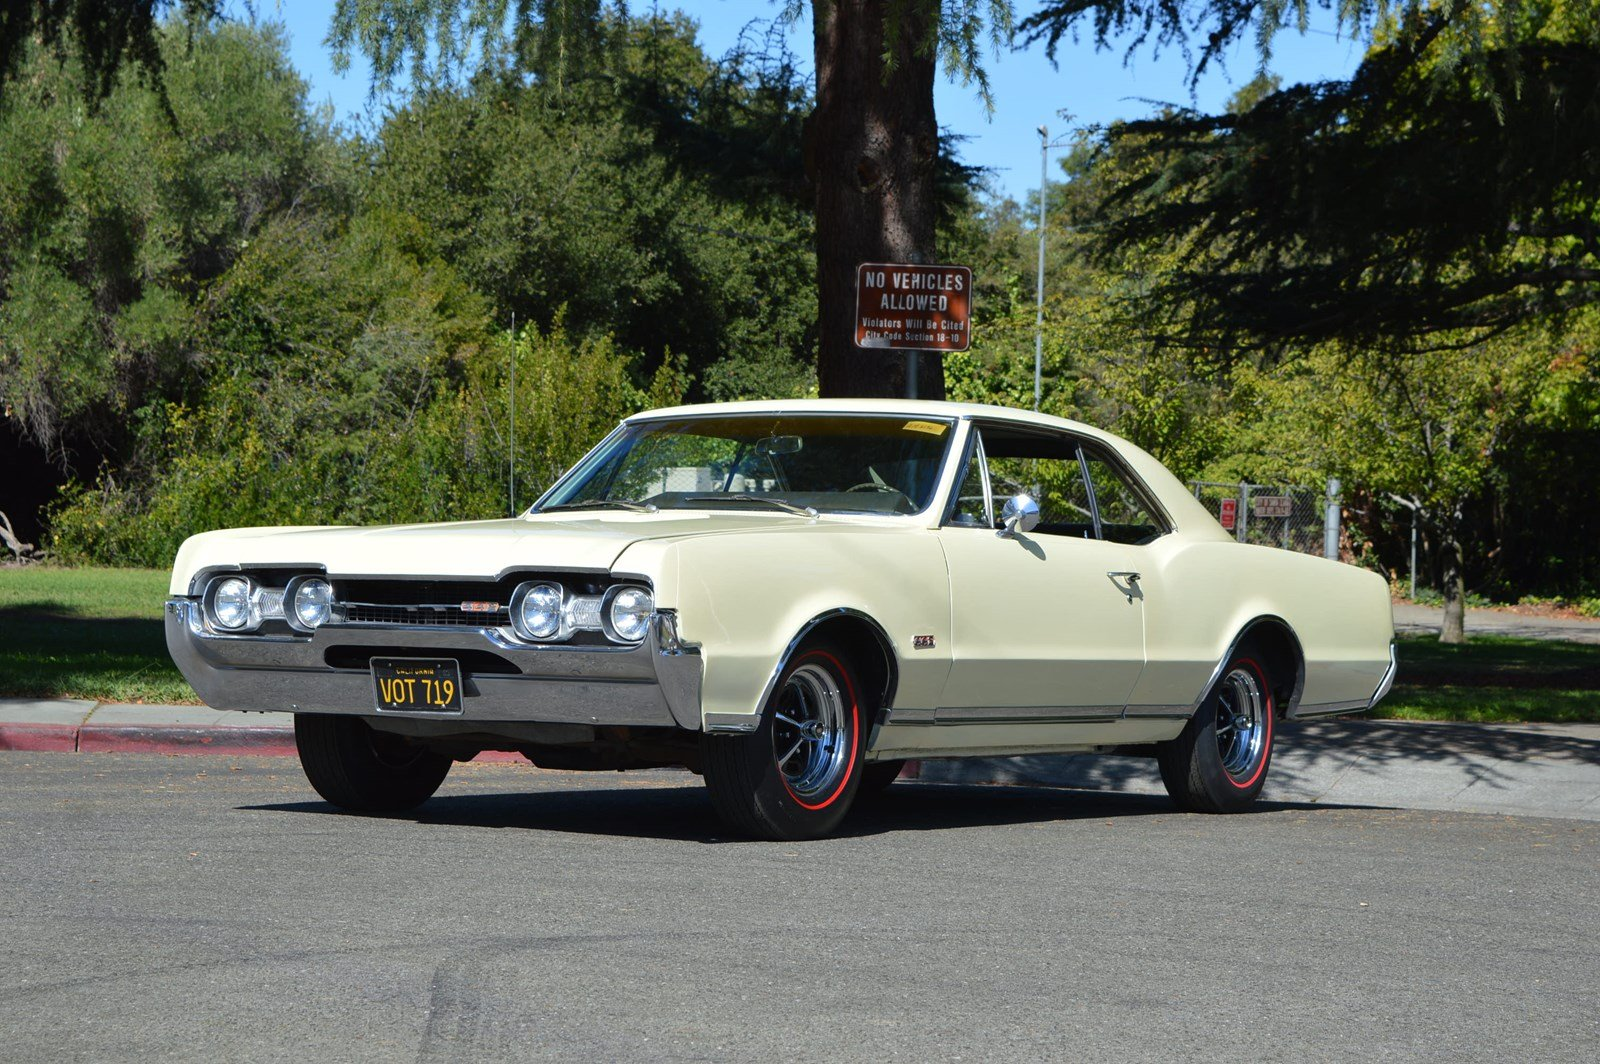 Photo Pre-Owned 1967 Oldsmobile Cutlass 442 s Matching Fully Documented 442 Build Sheet